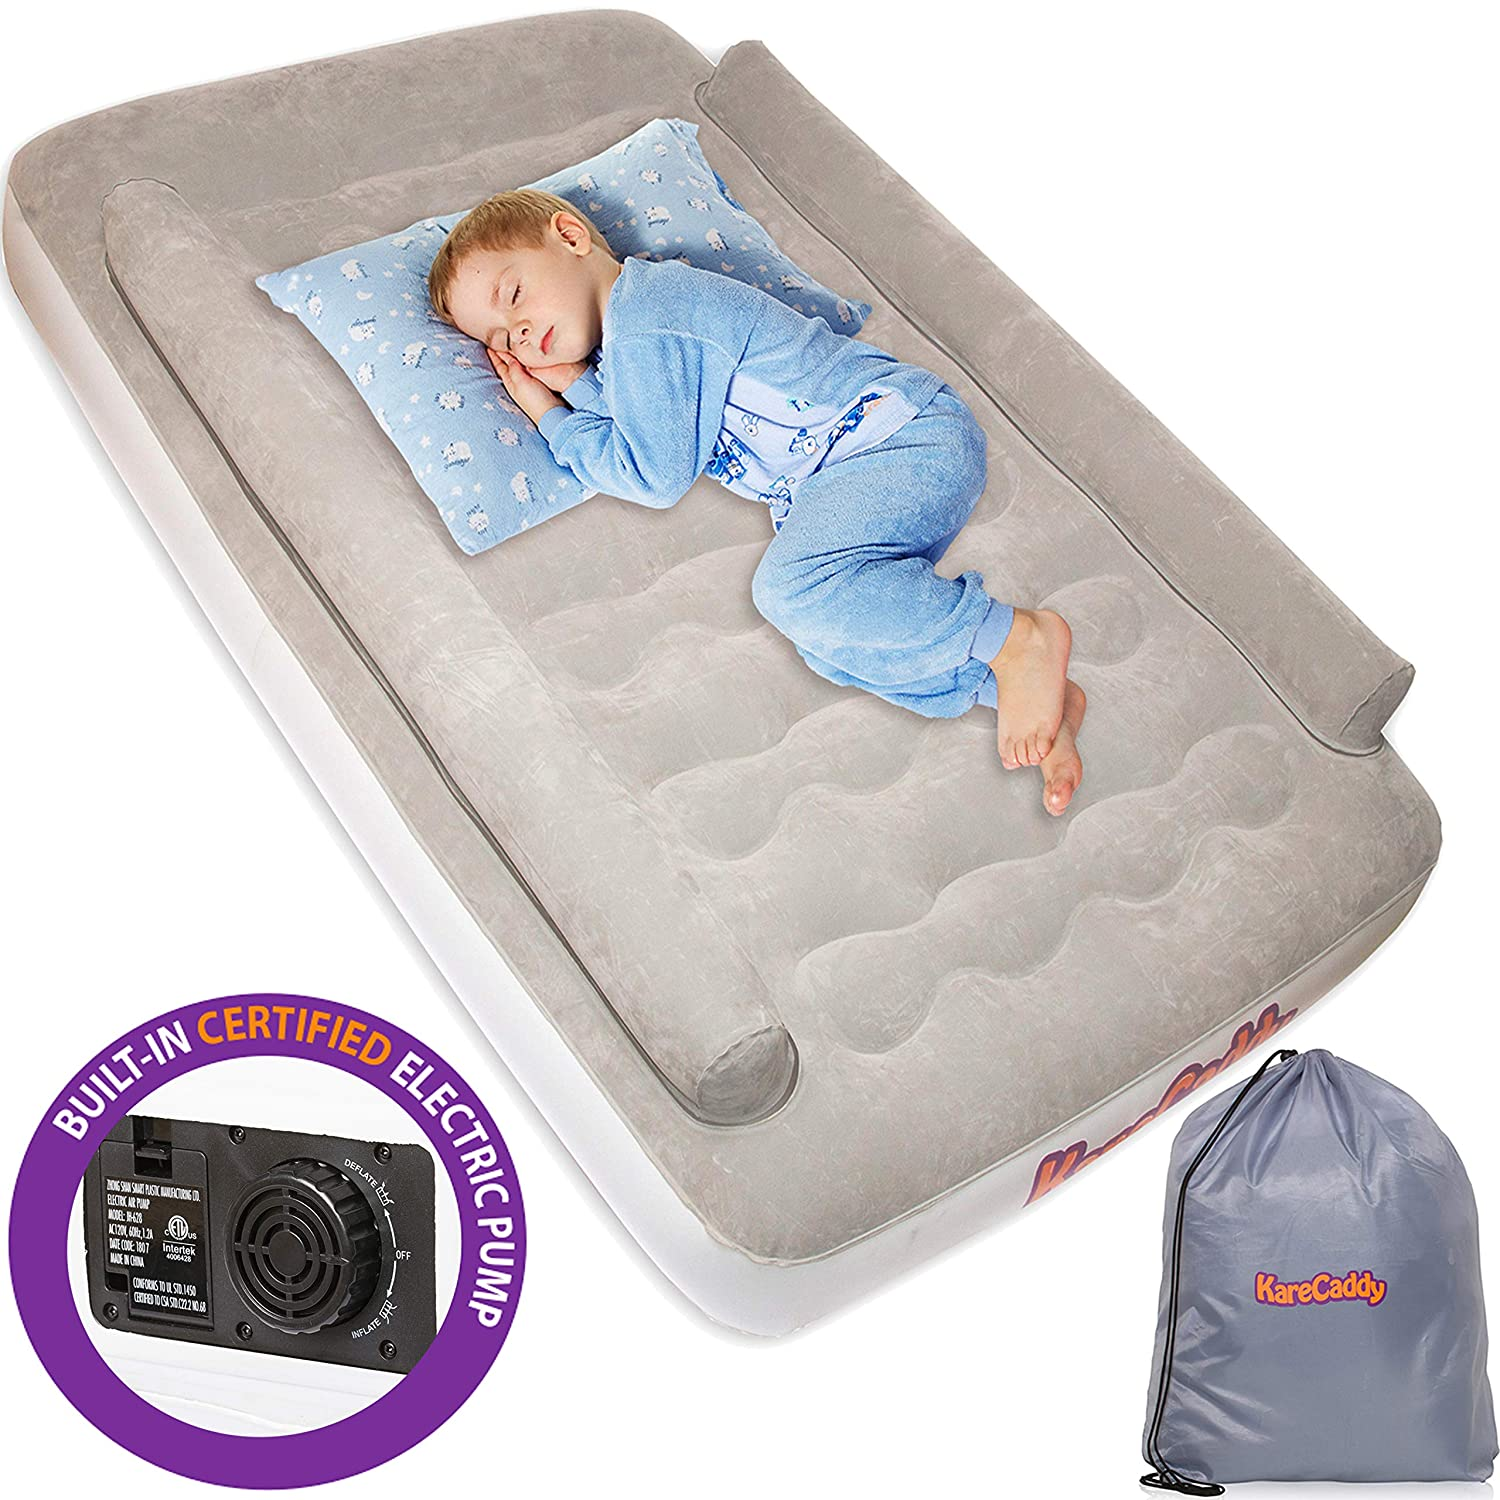 KareCaddy Toddler Air Mattress - Mattress For Kids